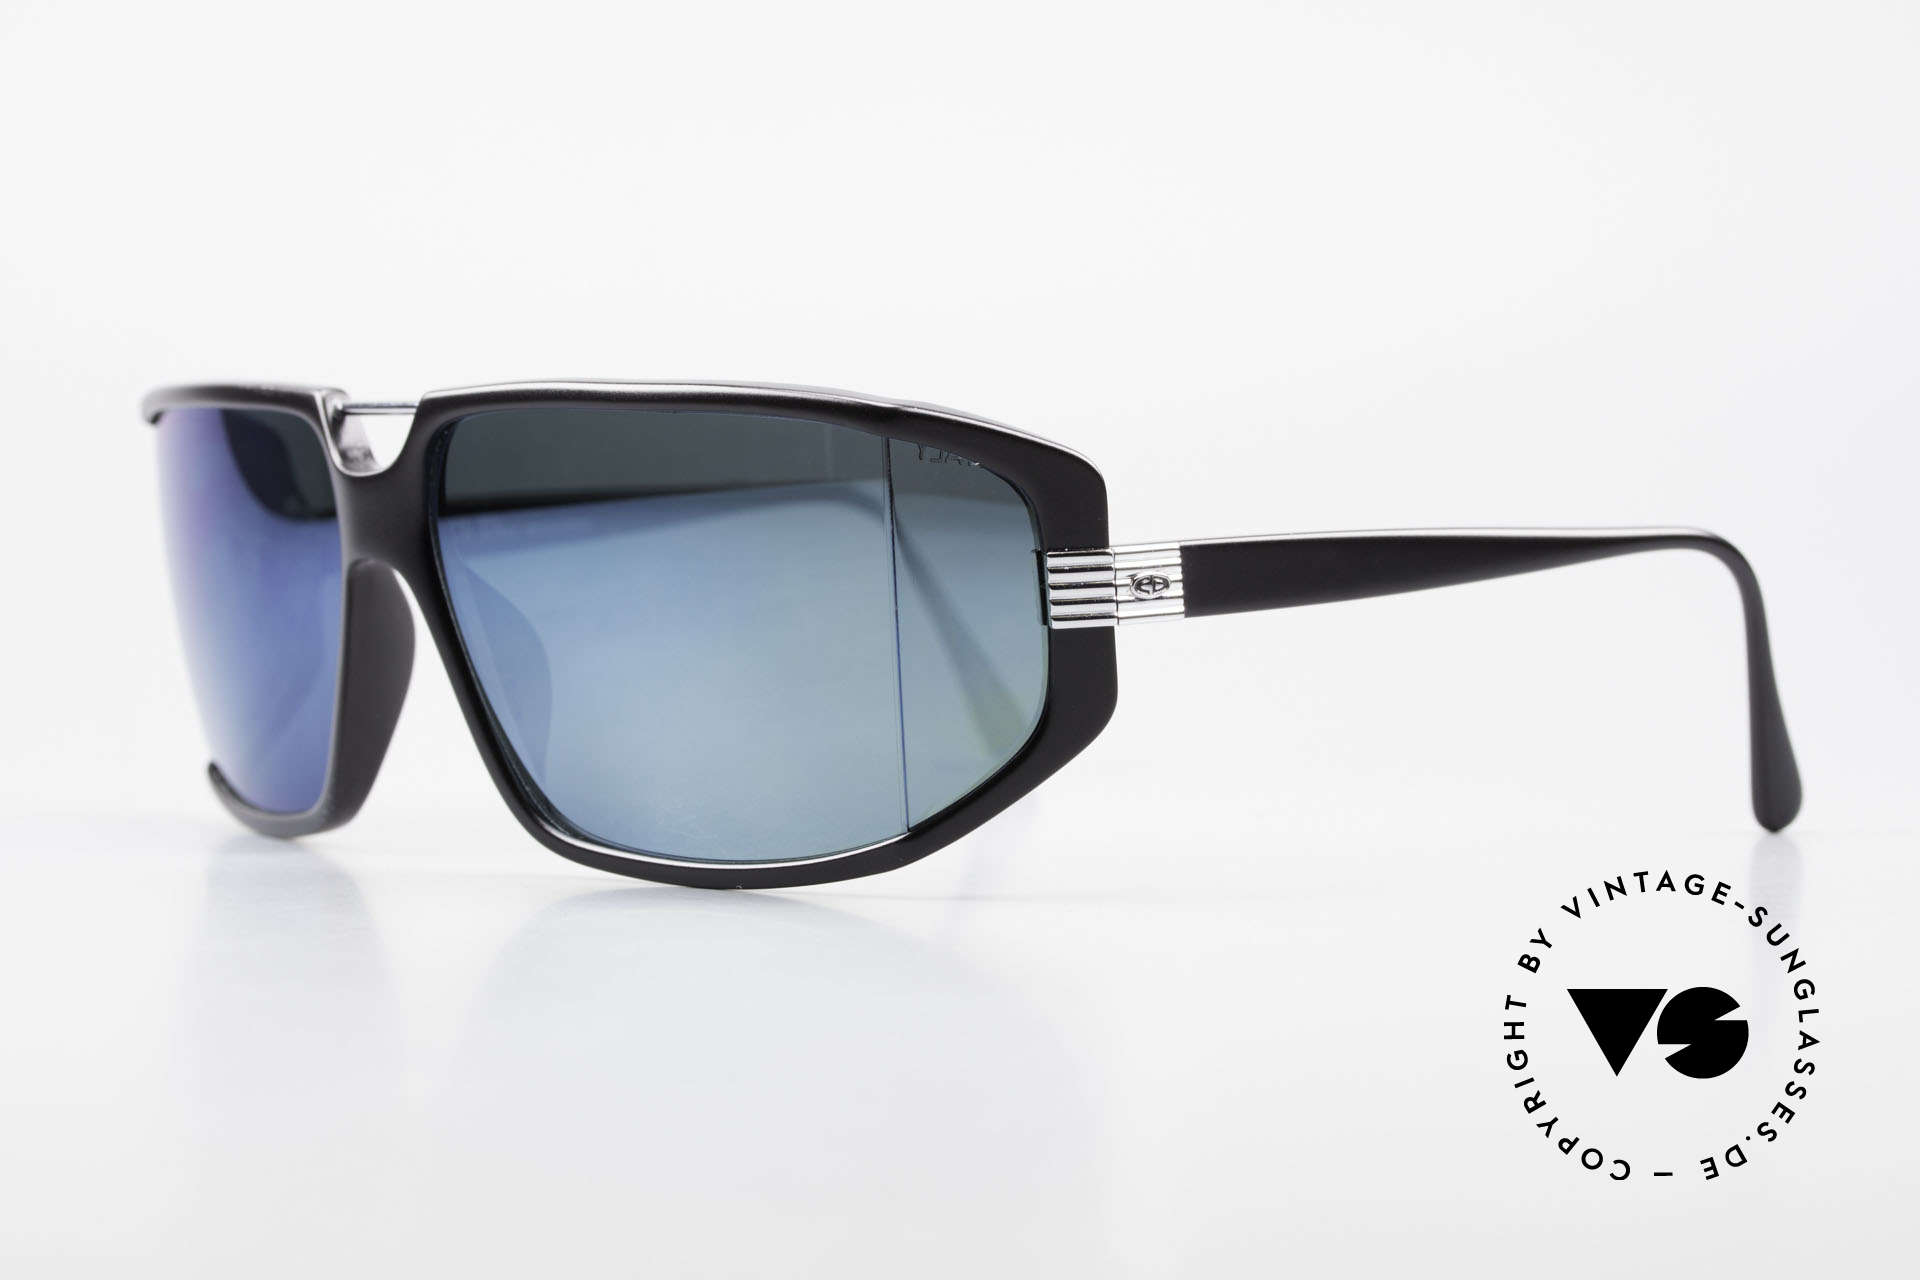 Christian Dior 2440 Monsieur 80's Men's Shades, the incredible OPTYL material does not seem to age, Made for Men